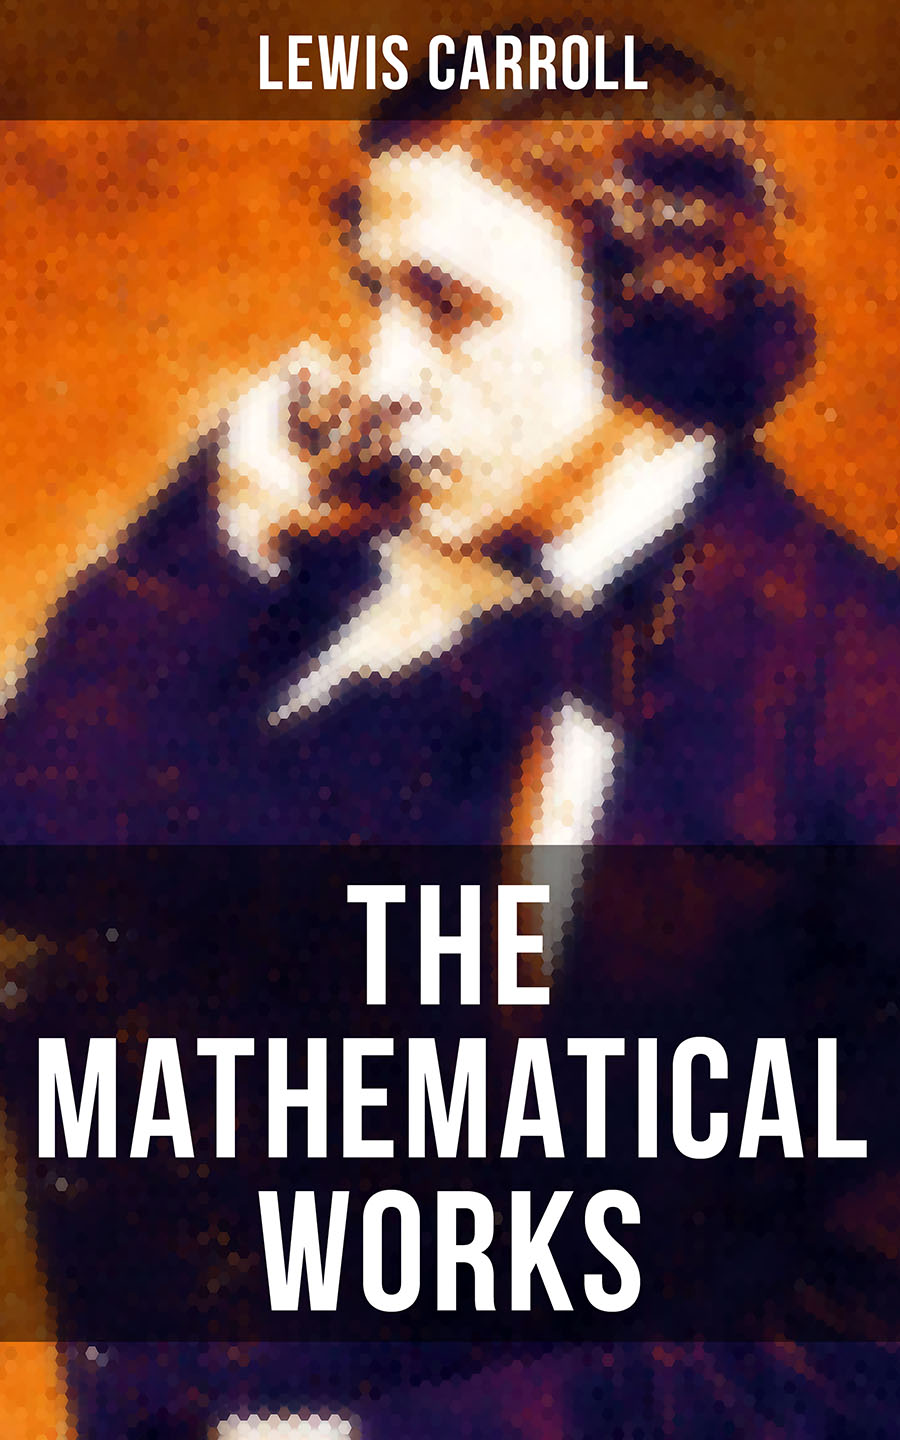 Lewis Carroll The Mathematical Works of Lewis Carroll